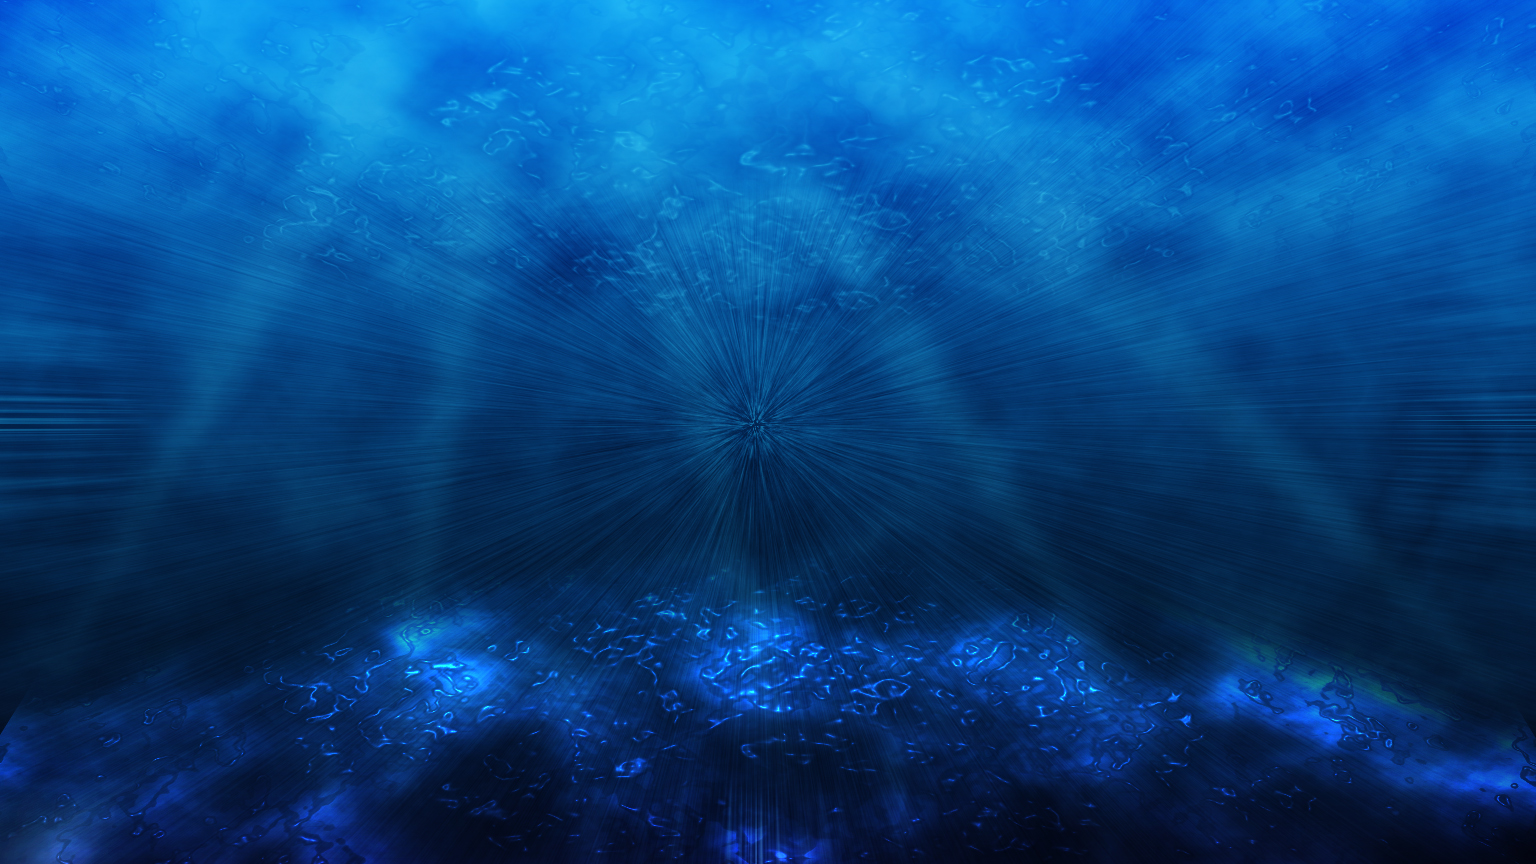 Deep Blue Sea wallpaper   ForWallpapercom 1536x864